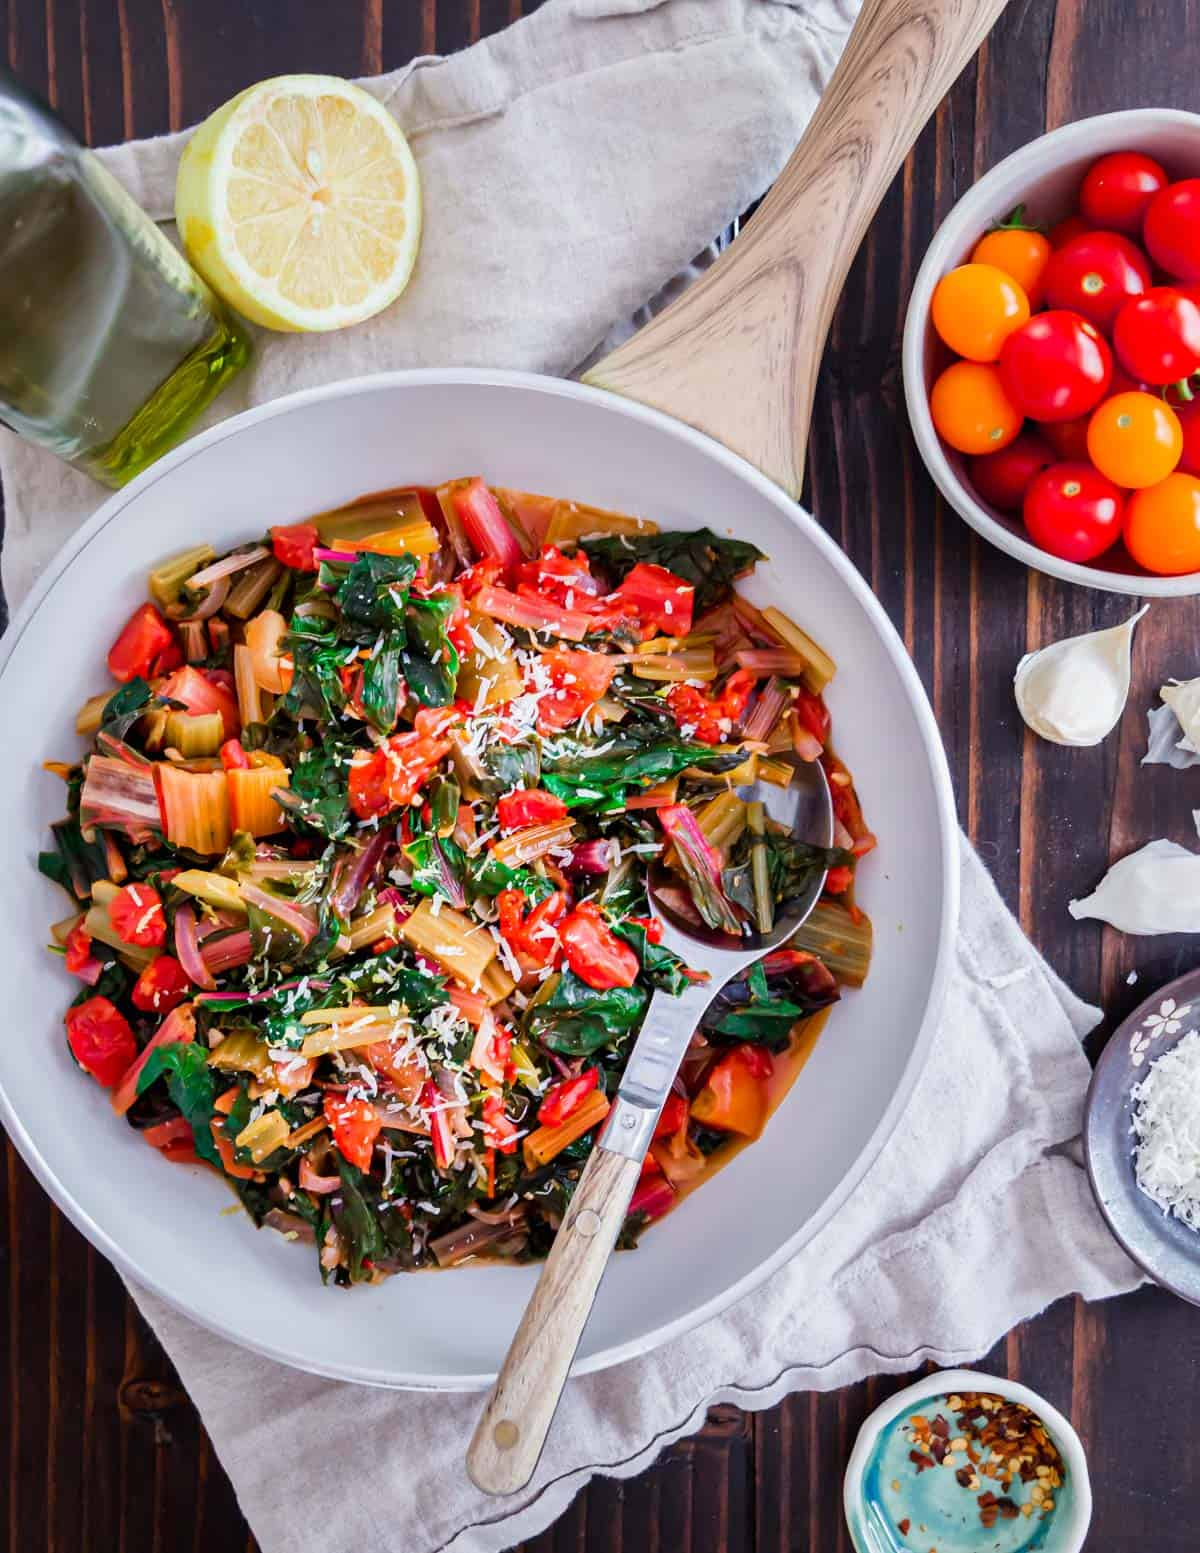 Easy sautéed Swiss chard with tomatoes, onions, garlic and lemon make a delicious and healthy vegetable side dish for summer.